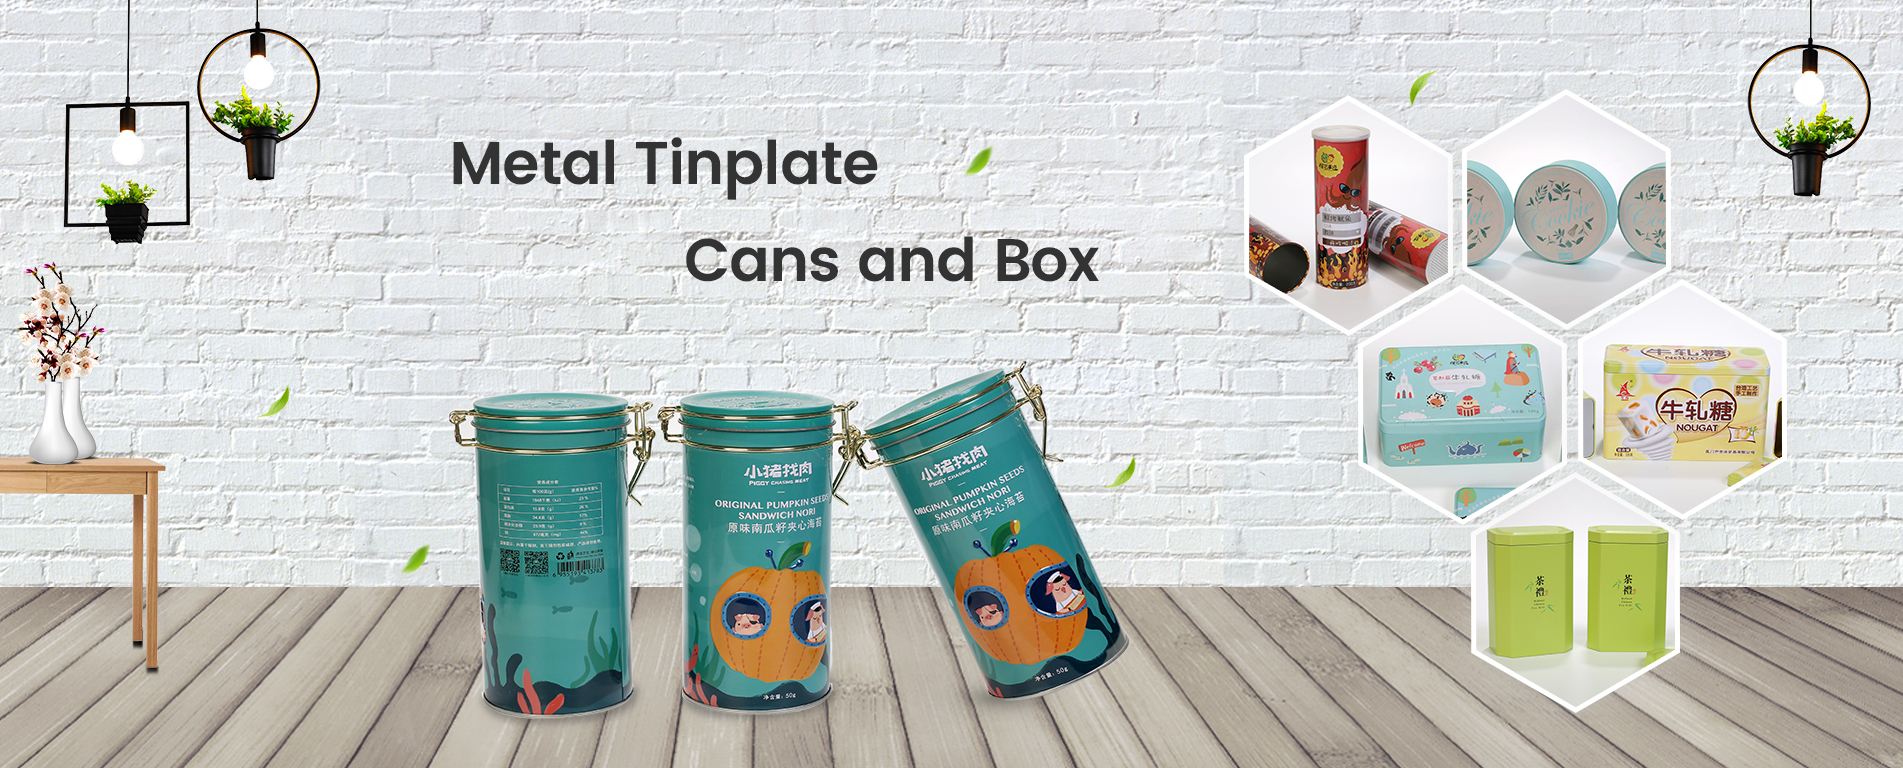 Metal Tinplate Cans and Box